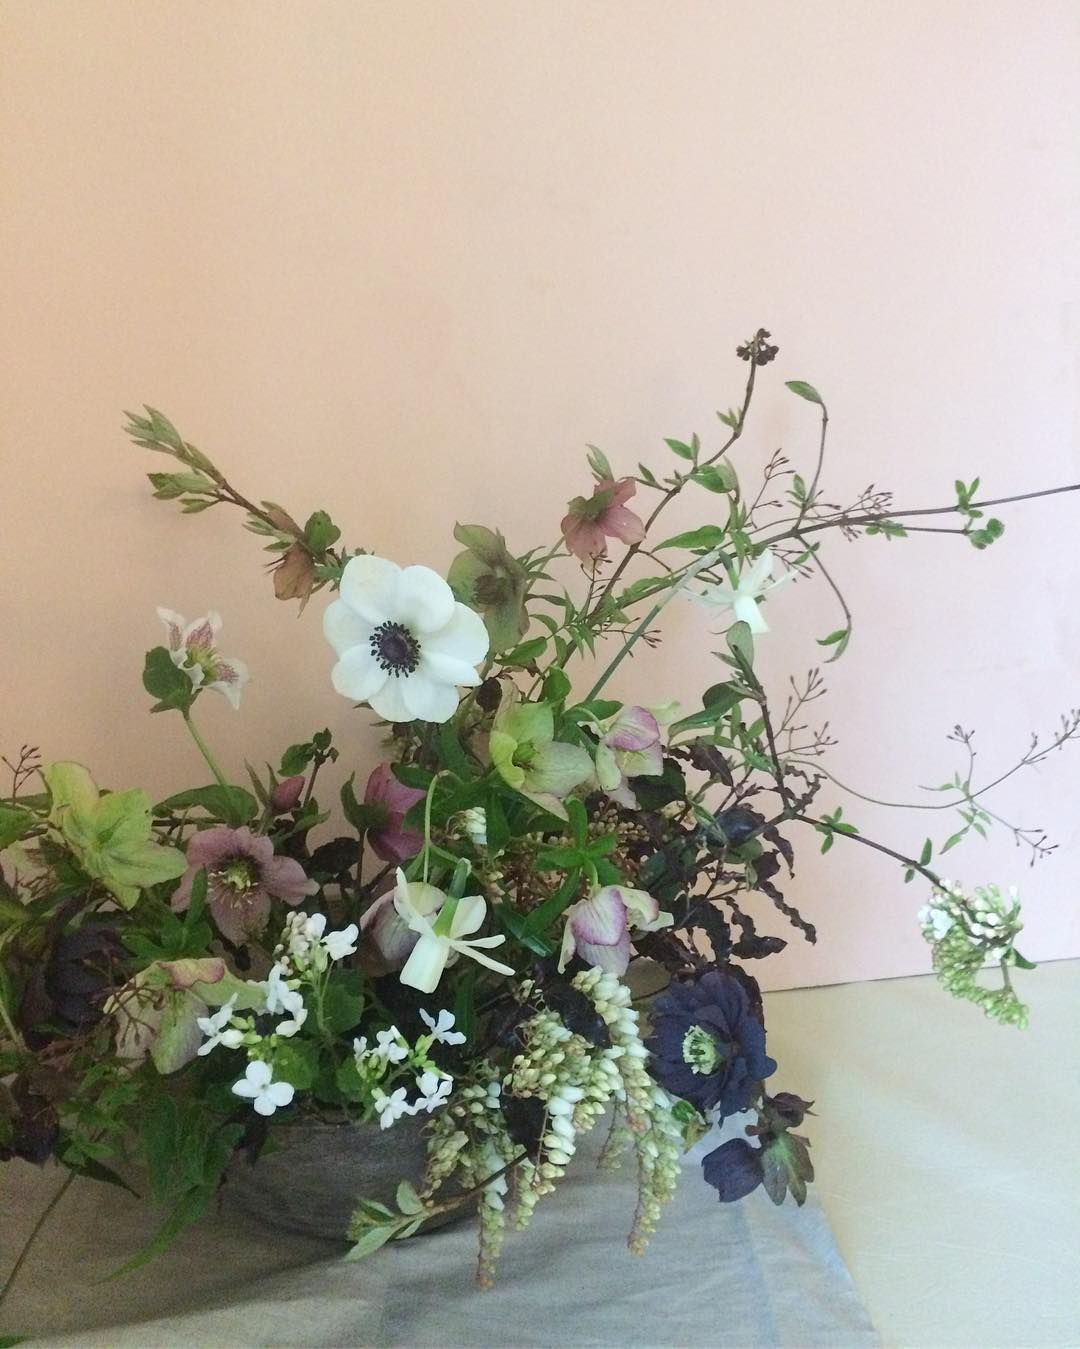 What a lovely day teaching our first 121 of the year and we got to demo our bowl arrangement in this gorgeous vessel sourced by @emma_natter can't wait to see @taylorandporter image of it! #gardengateclasses #helleboreappreciationsociety #britishflowers